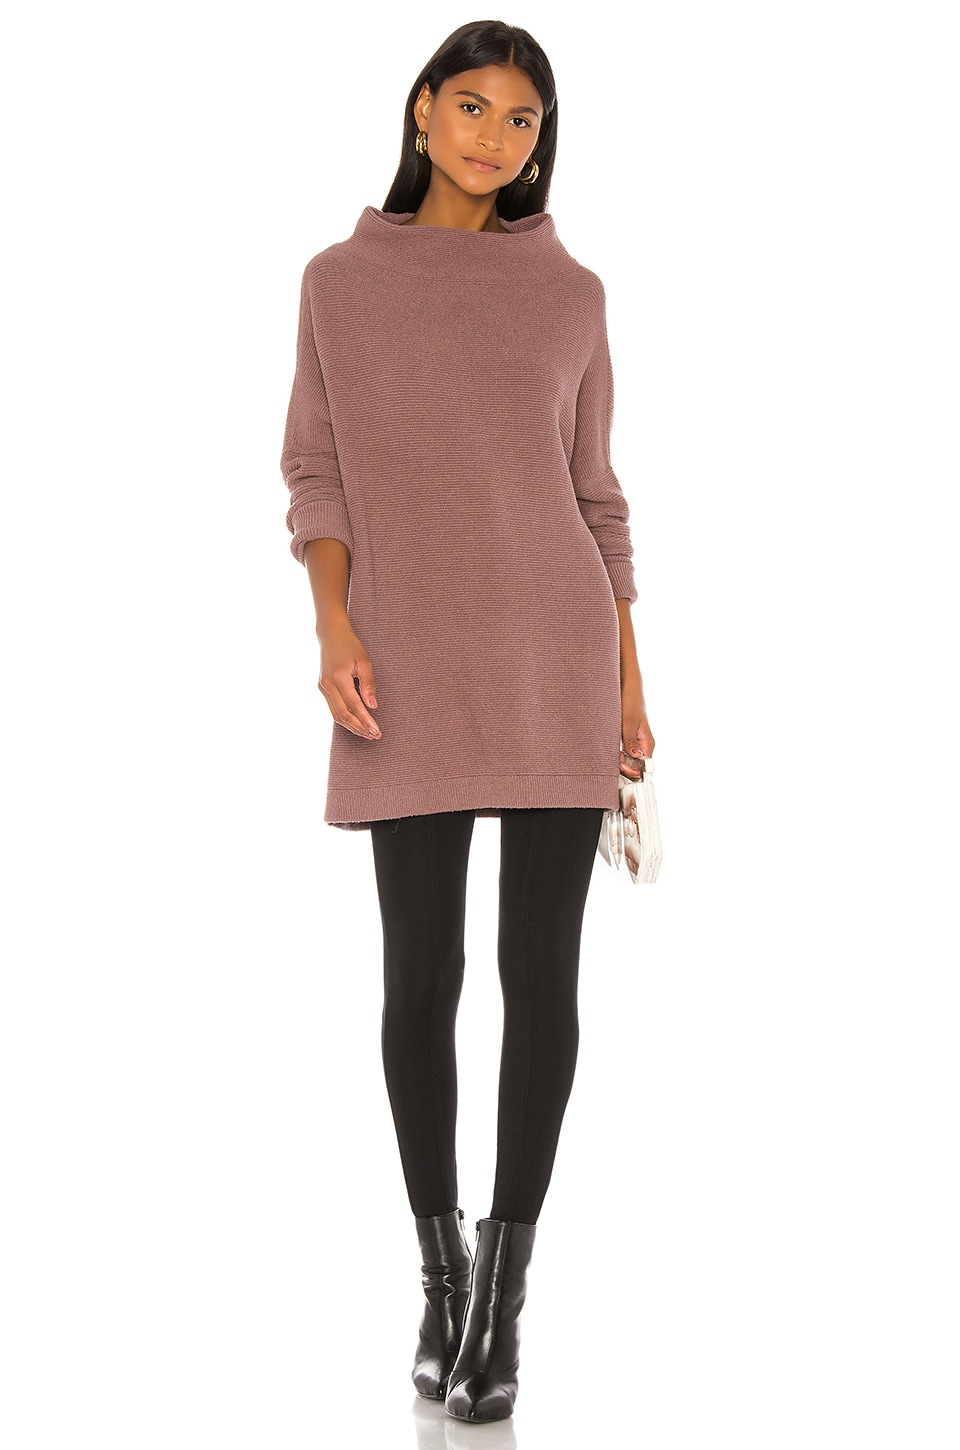 Free People Ottoman Slouchy Tunic Sweater Dress in Taupe